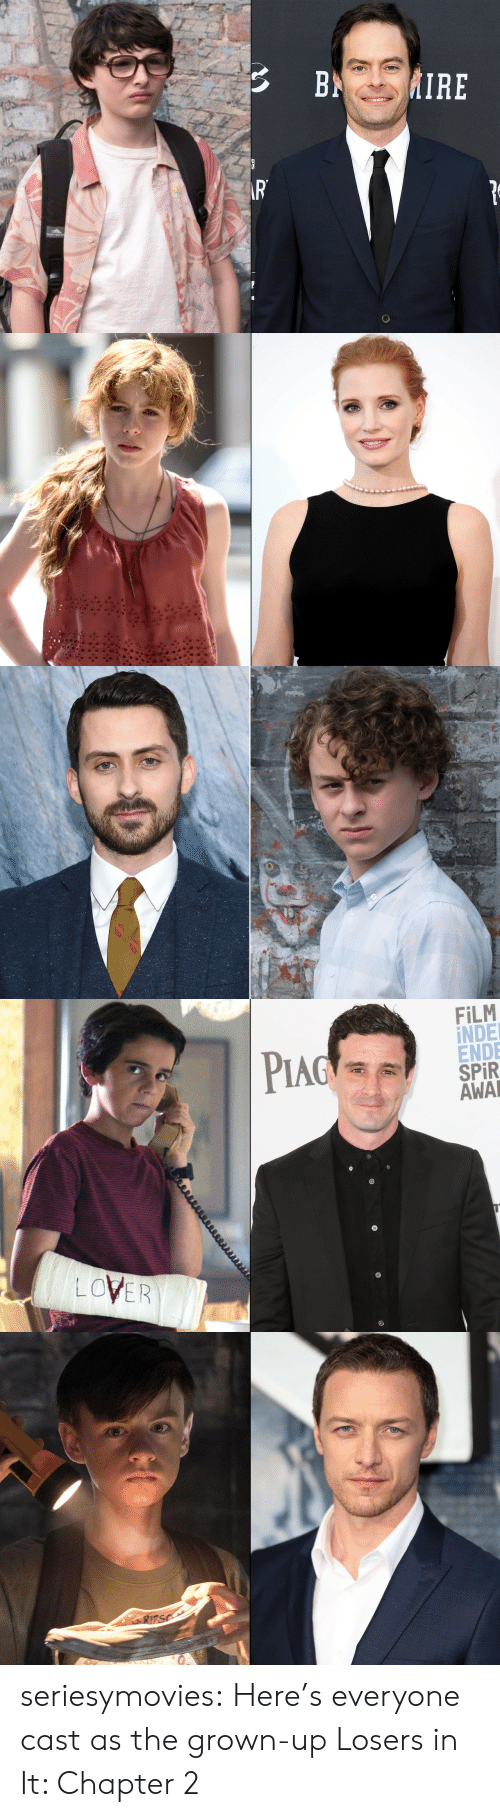 spr: Pind :  FİLM  İNDE  ENDE  SPR  AWA  PIA  LOVER seriesymovies:  Here's everyone cast as the grown-up Losers in It: Chapter 2